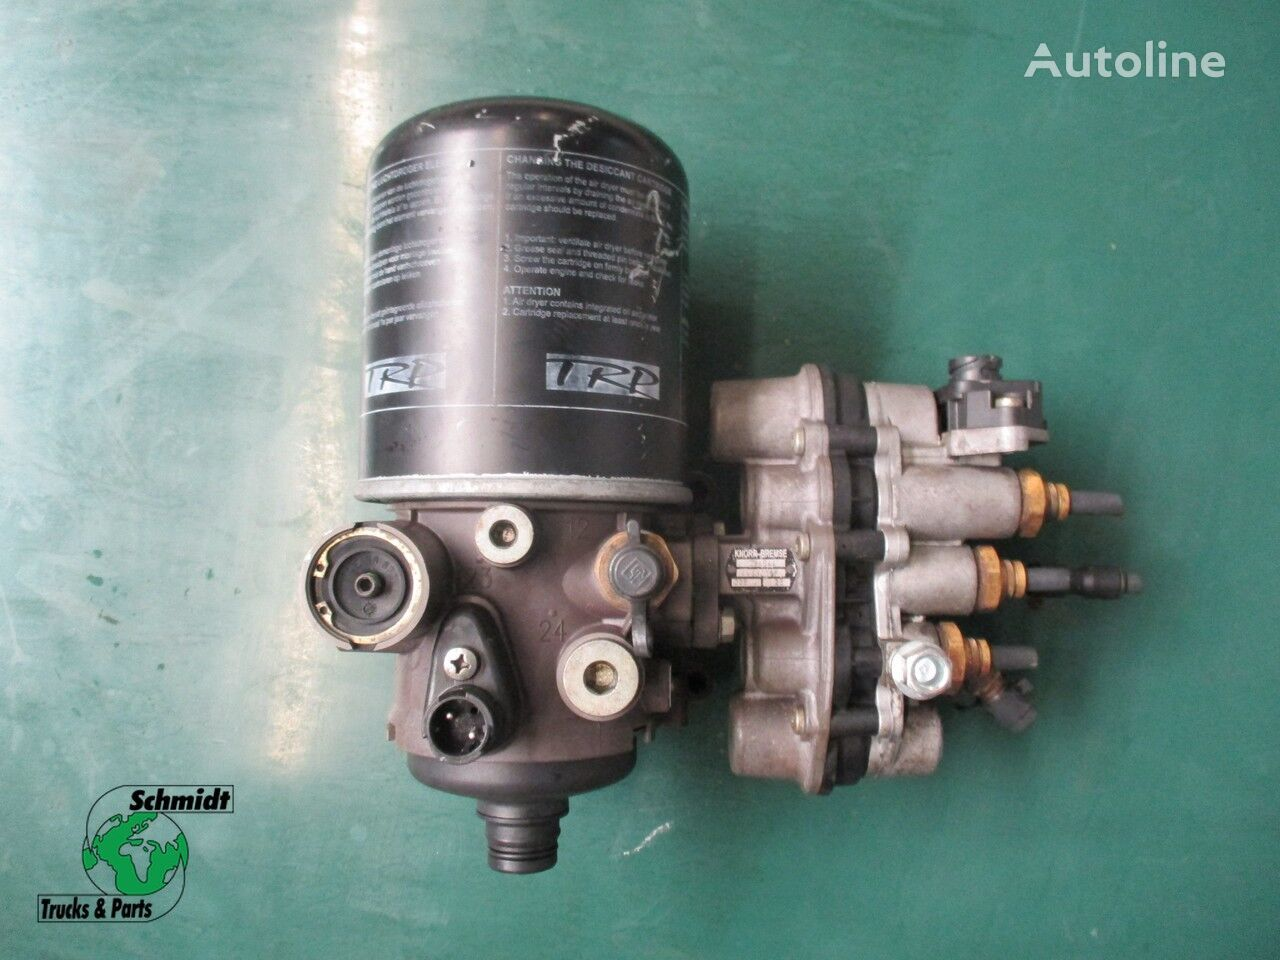 Air dryer DAF 1403422/1701116 spare parts for tractor unit